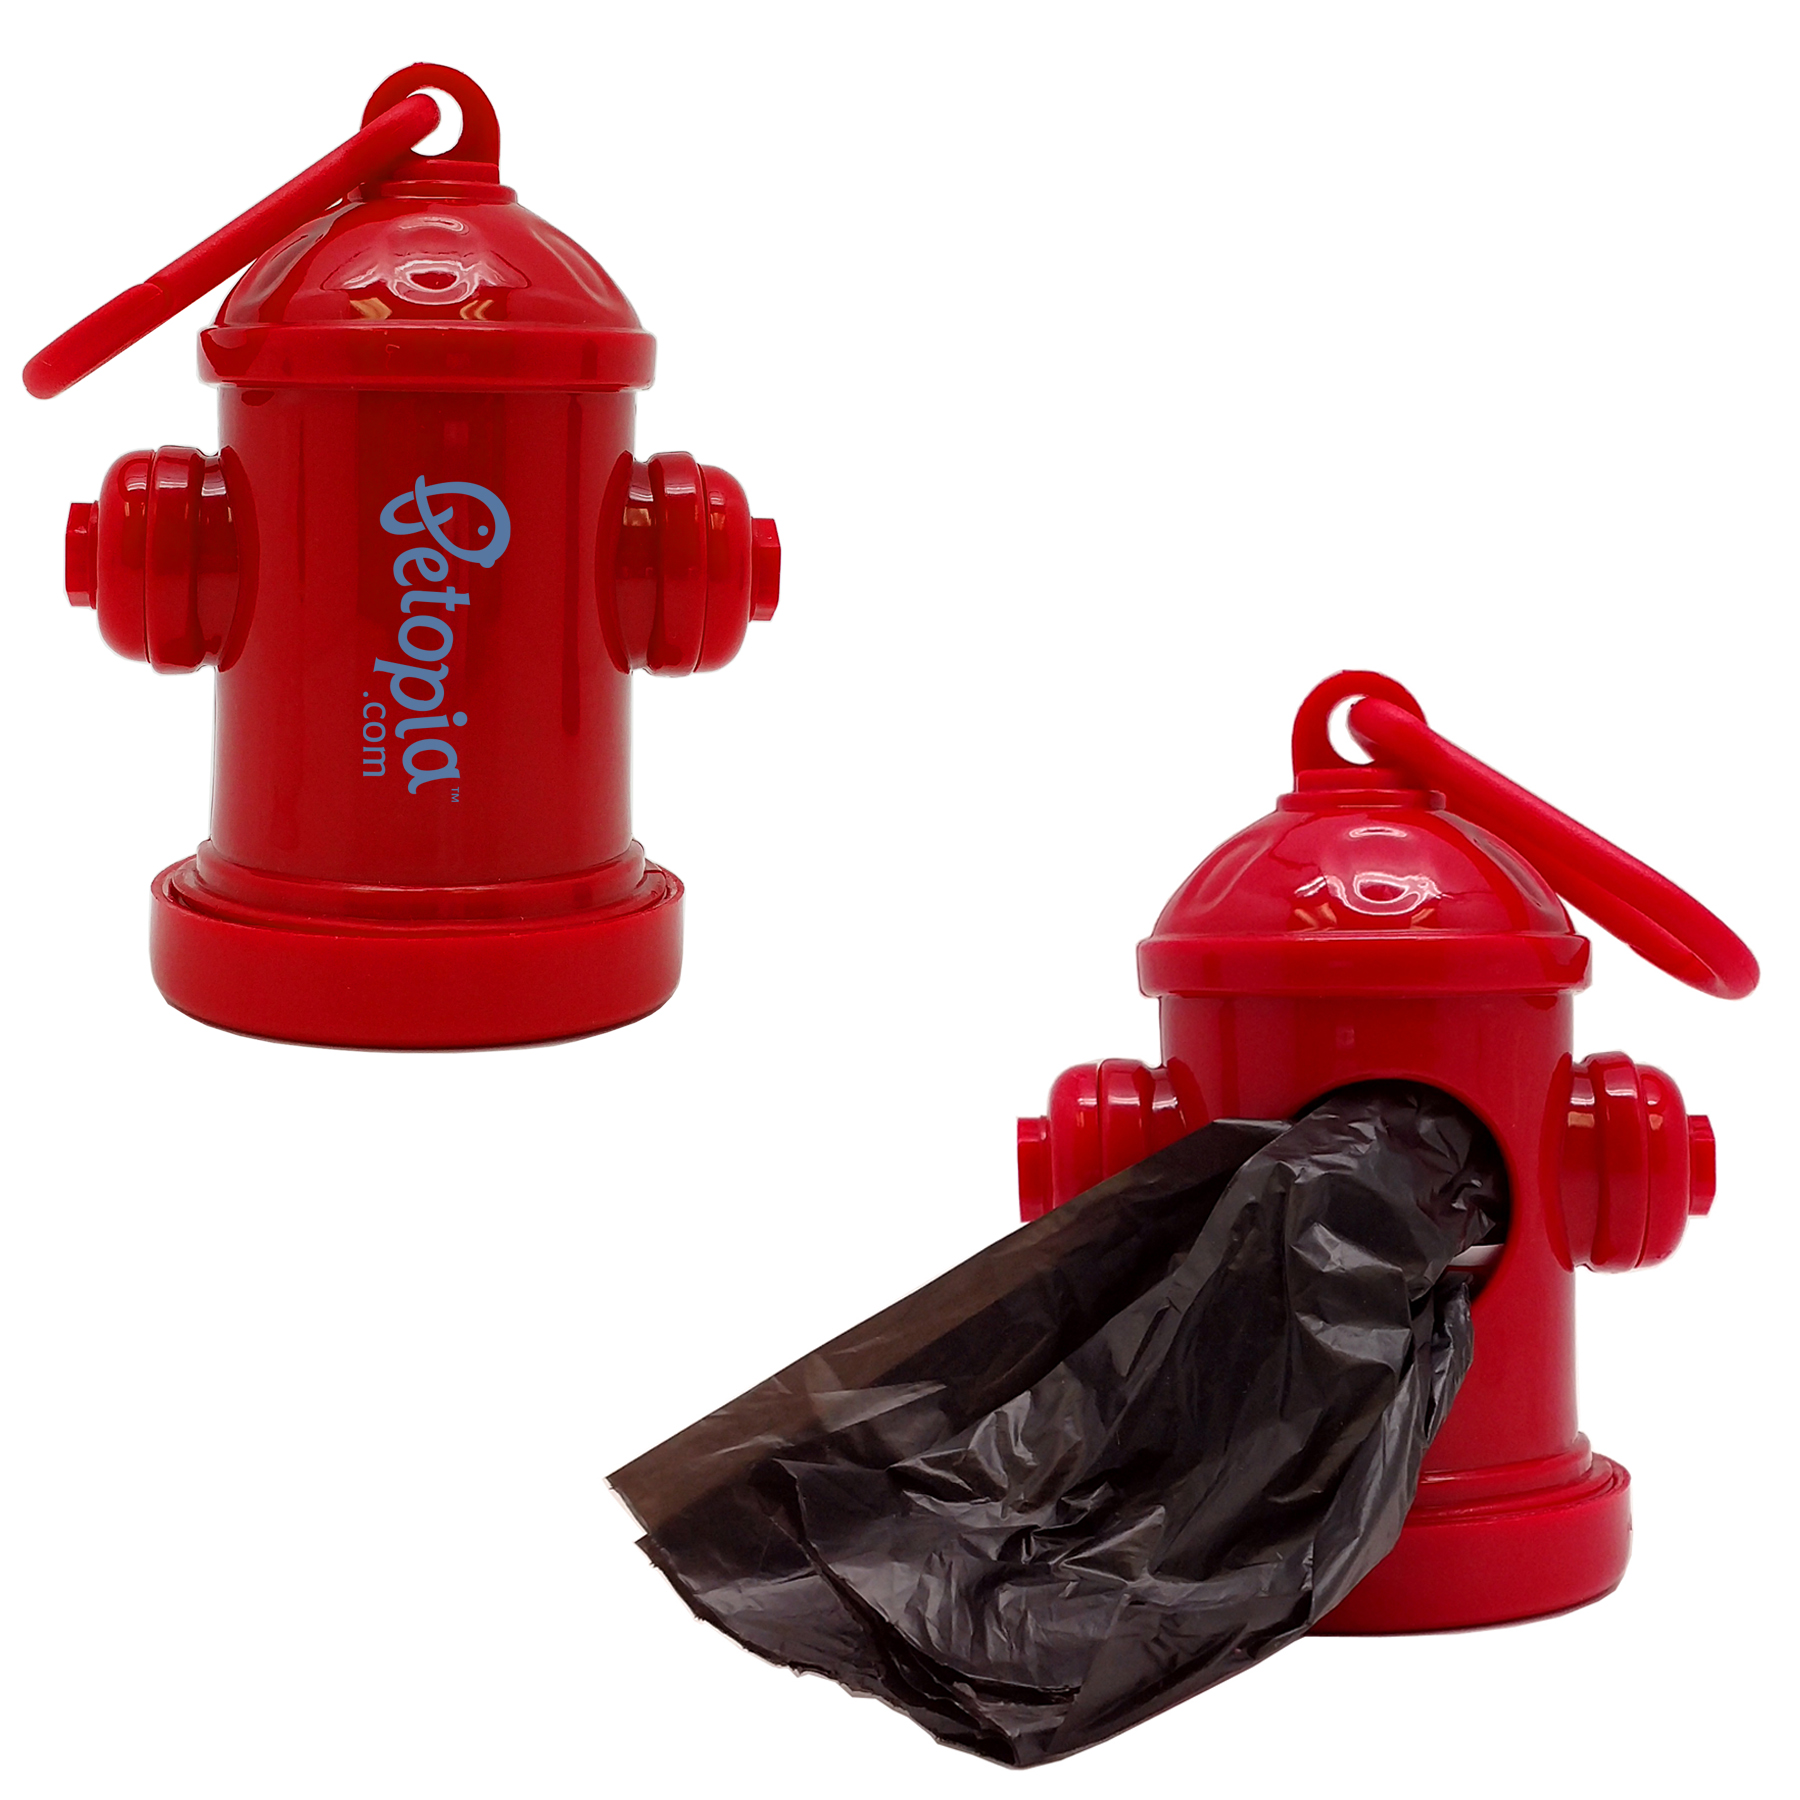 PORTABLE HYDRANT SHAPED BAG DISPENSER